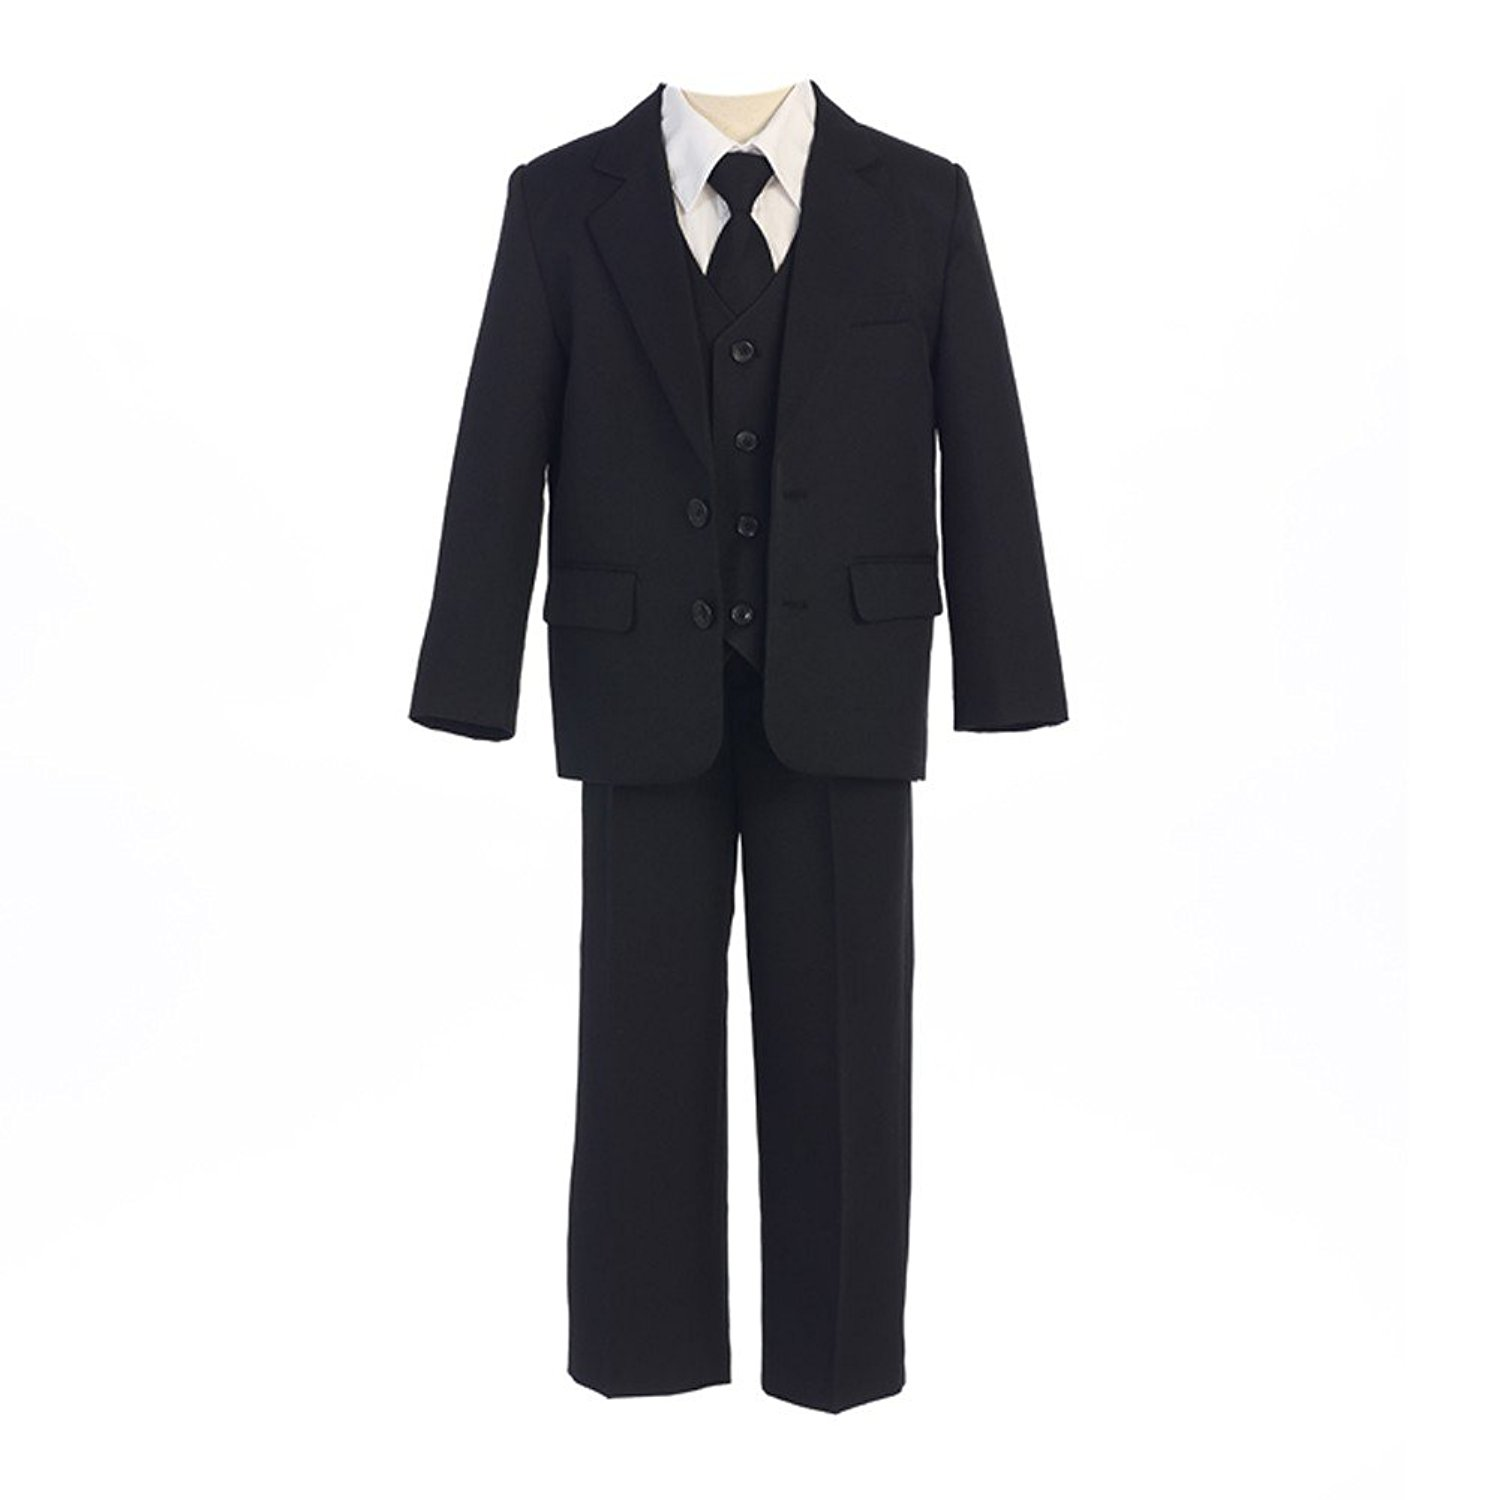 9caab786c4b Get Quotations · Sweet Kids Big Boys Black Button Jacket Vest Shirt Tie  Pant Suit 8-20 Husky